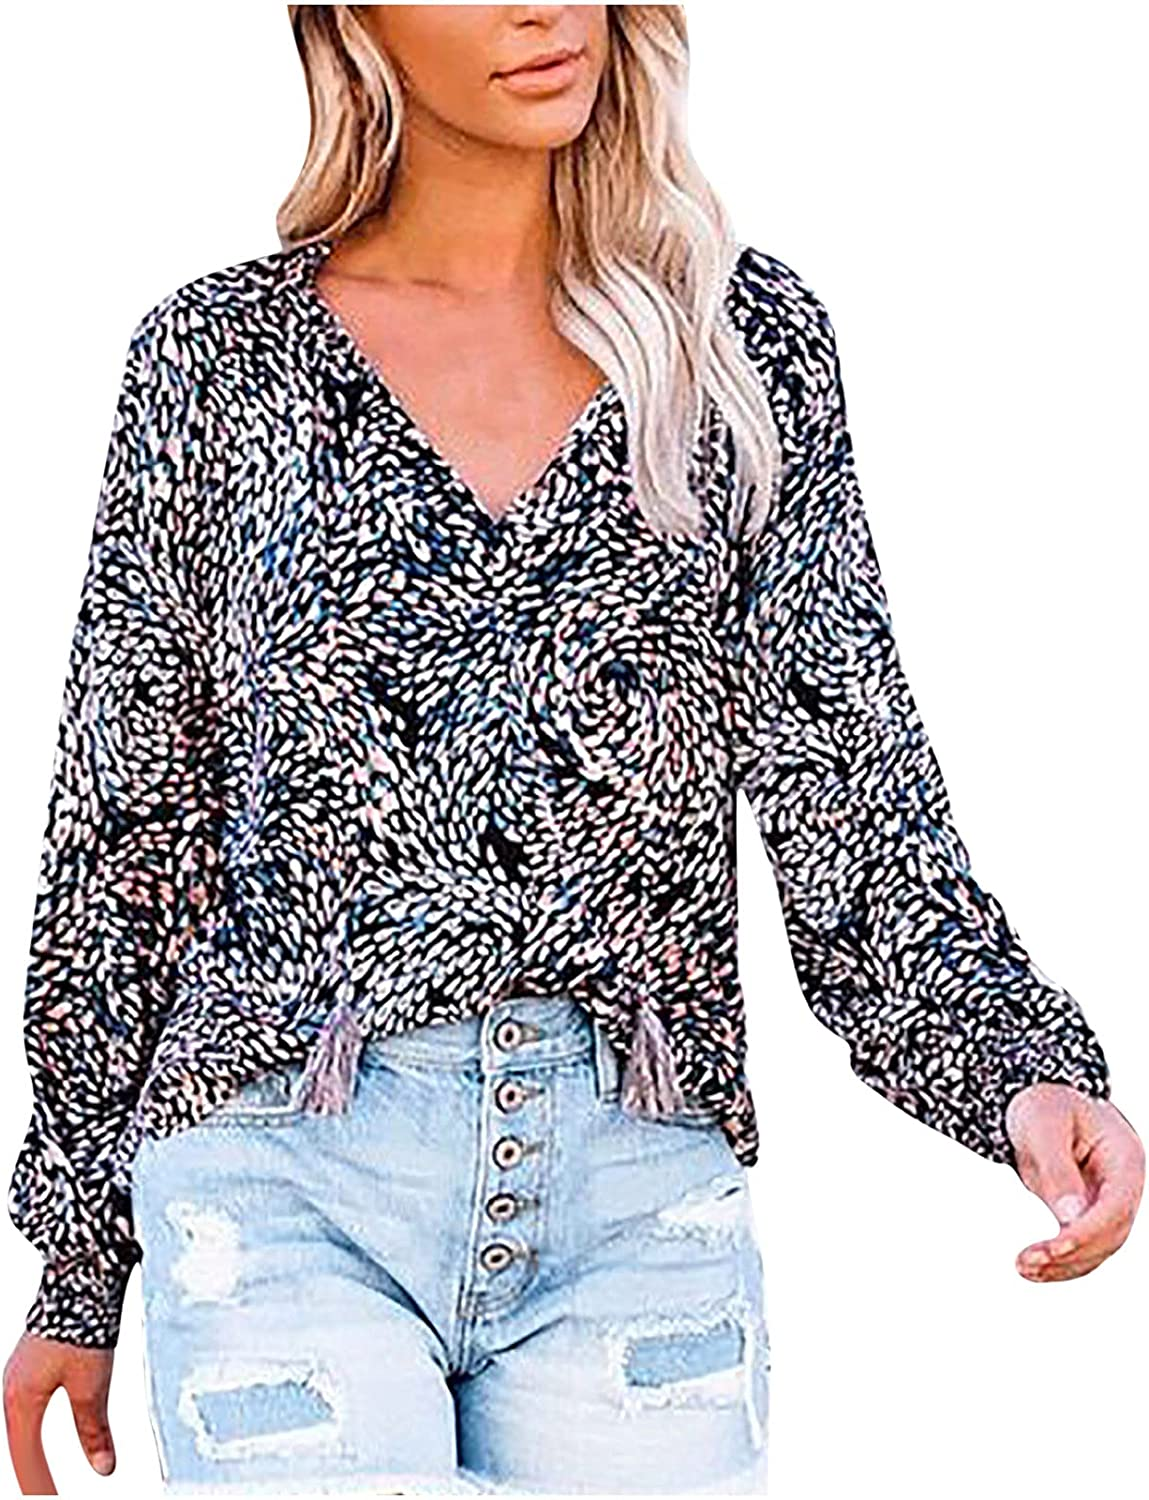 Womens Vintage Tie V Neck Puff Sleeve Button Down Shirts Casual Loose Lantern Long Sleeve Button Blouse Tee Tops